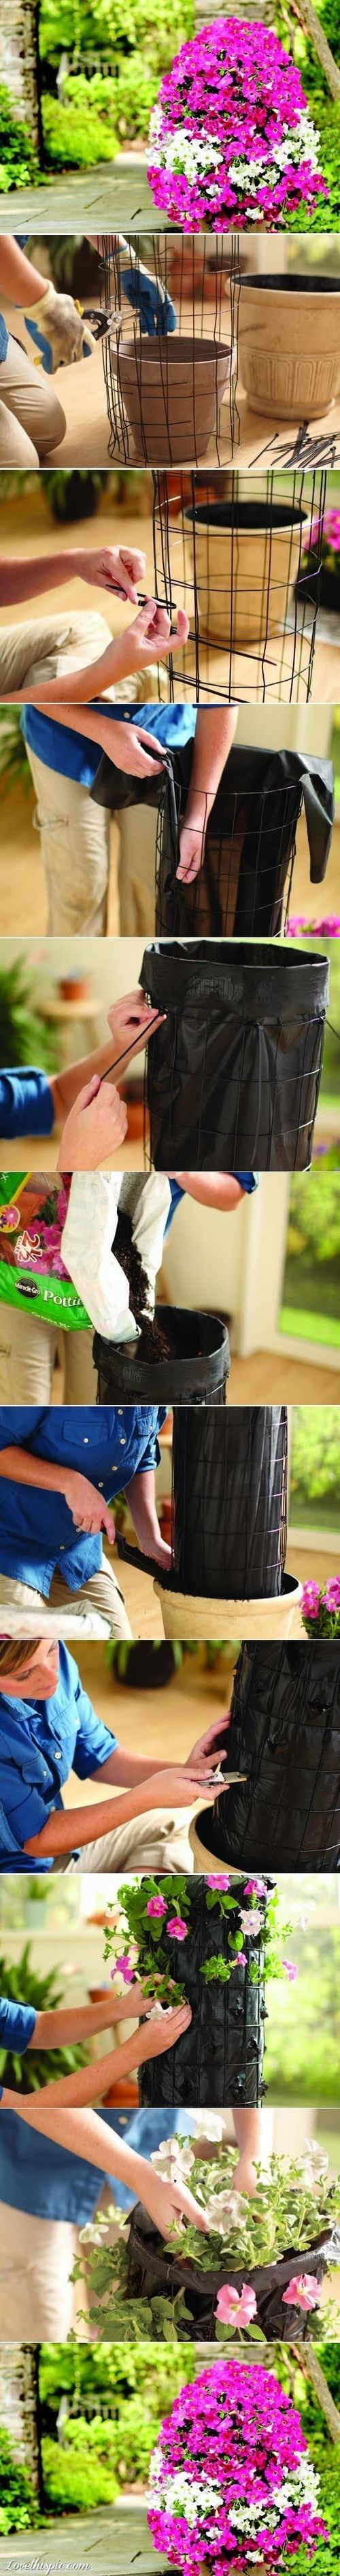 DIY Planters diy crafts diy decor diy home decor easy diy diy planter